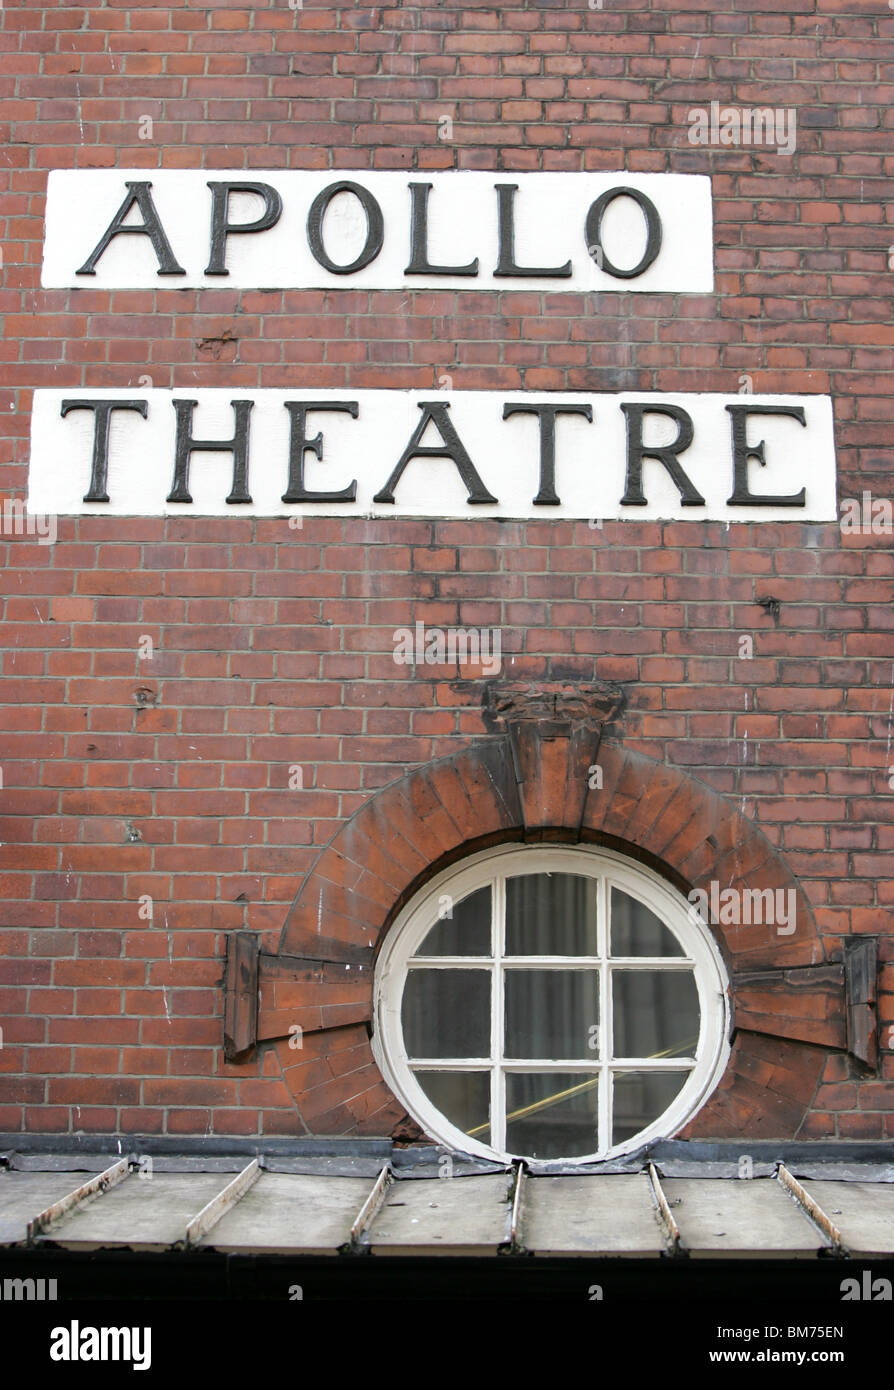 The Apollo Theatre, London, detail - Stock Image